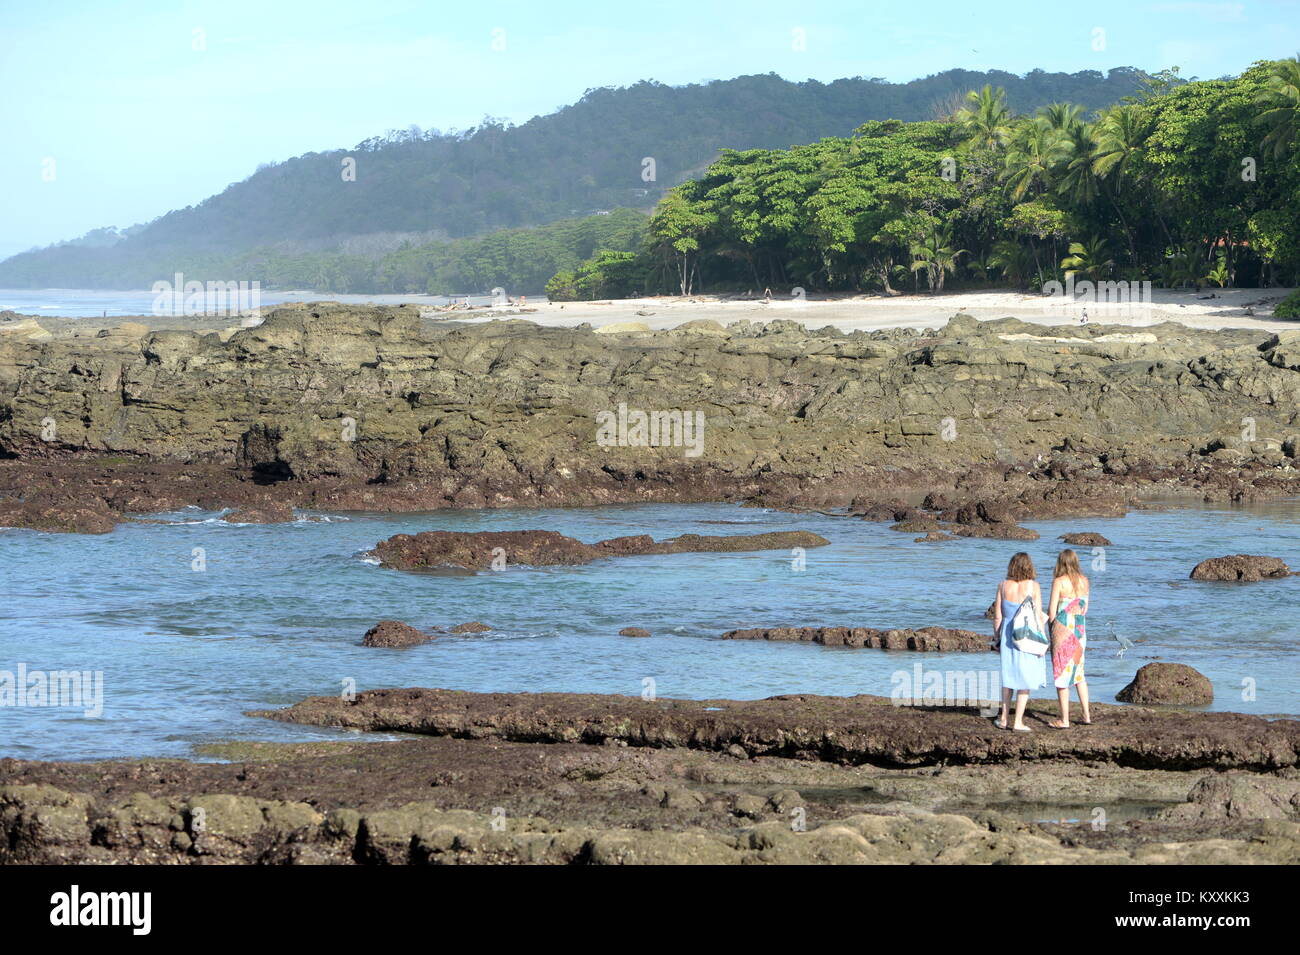 Two people - mother and daughter at waters edge watch a blue heron in tidal pool in Costa Rica - Stock Image